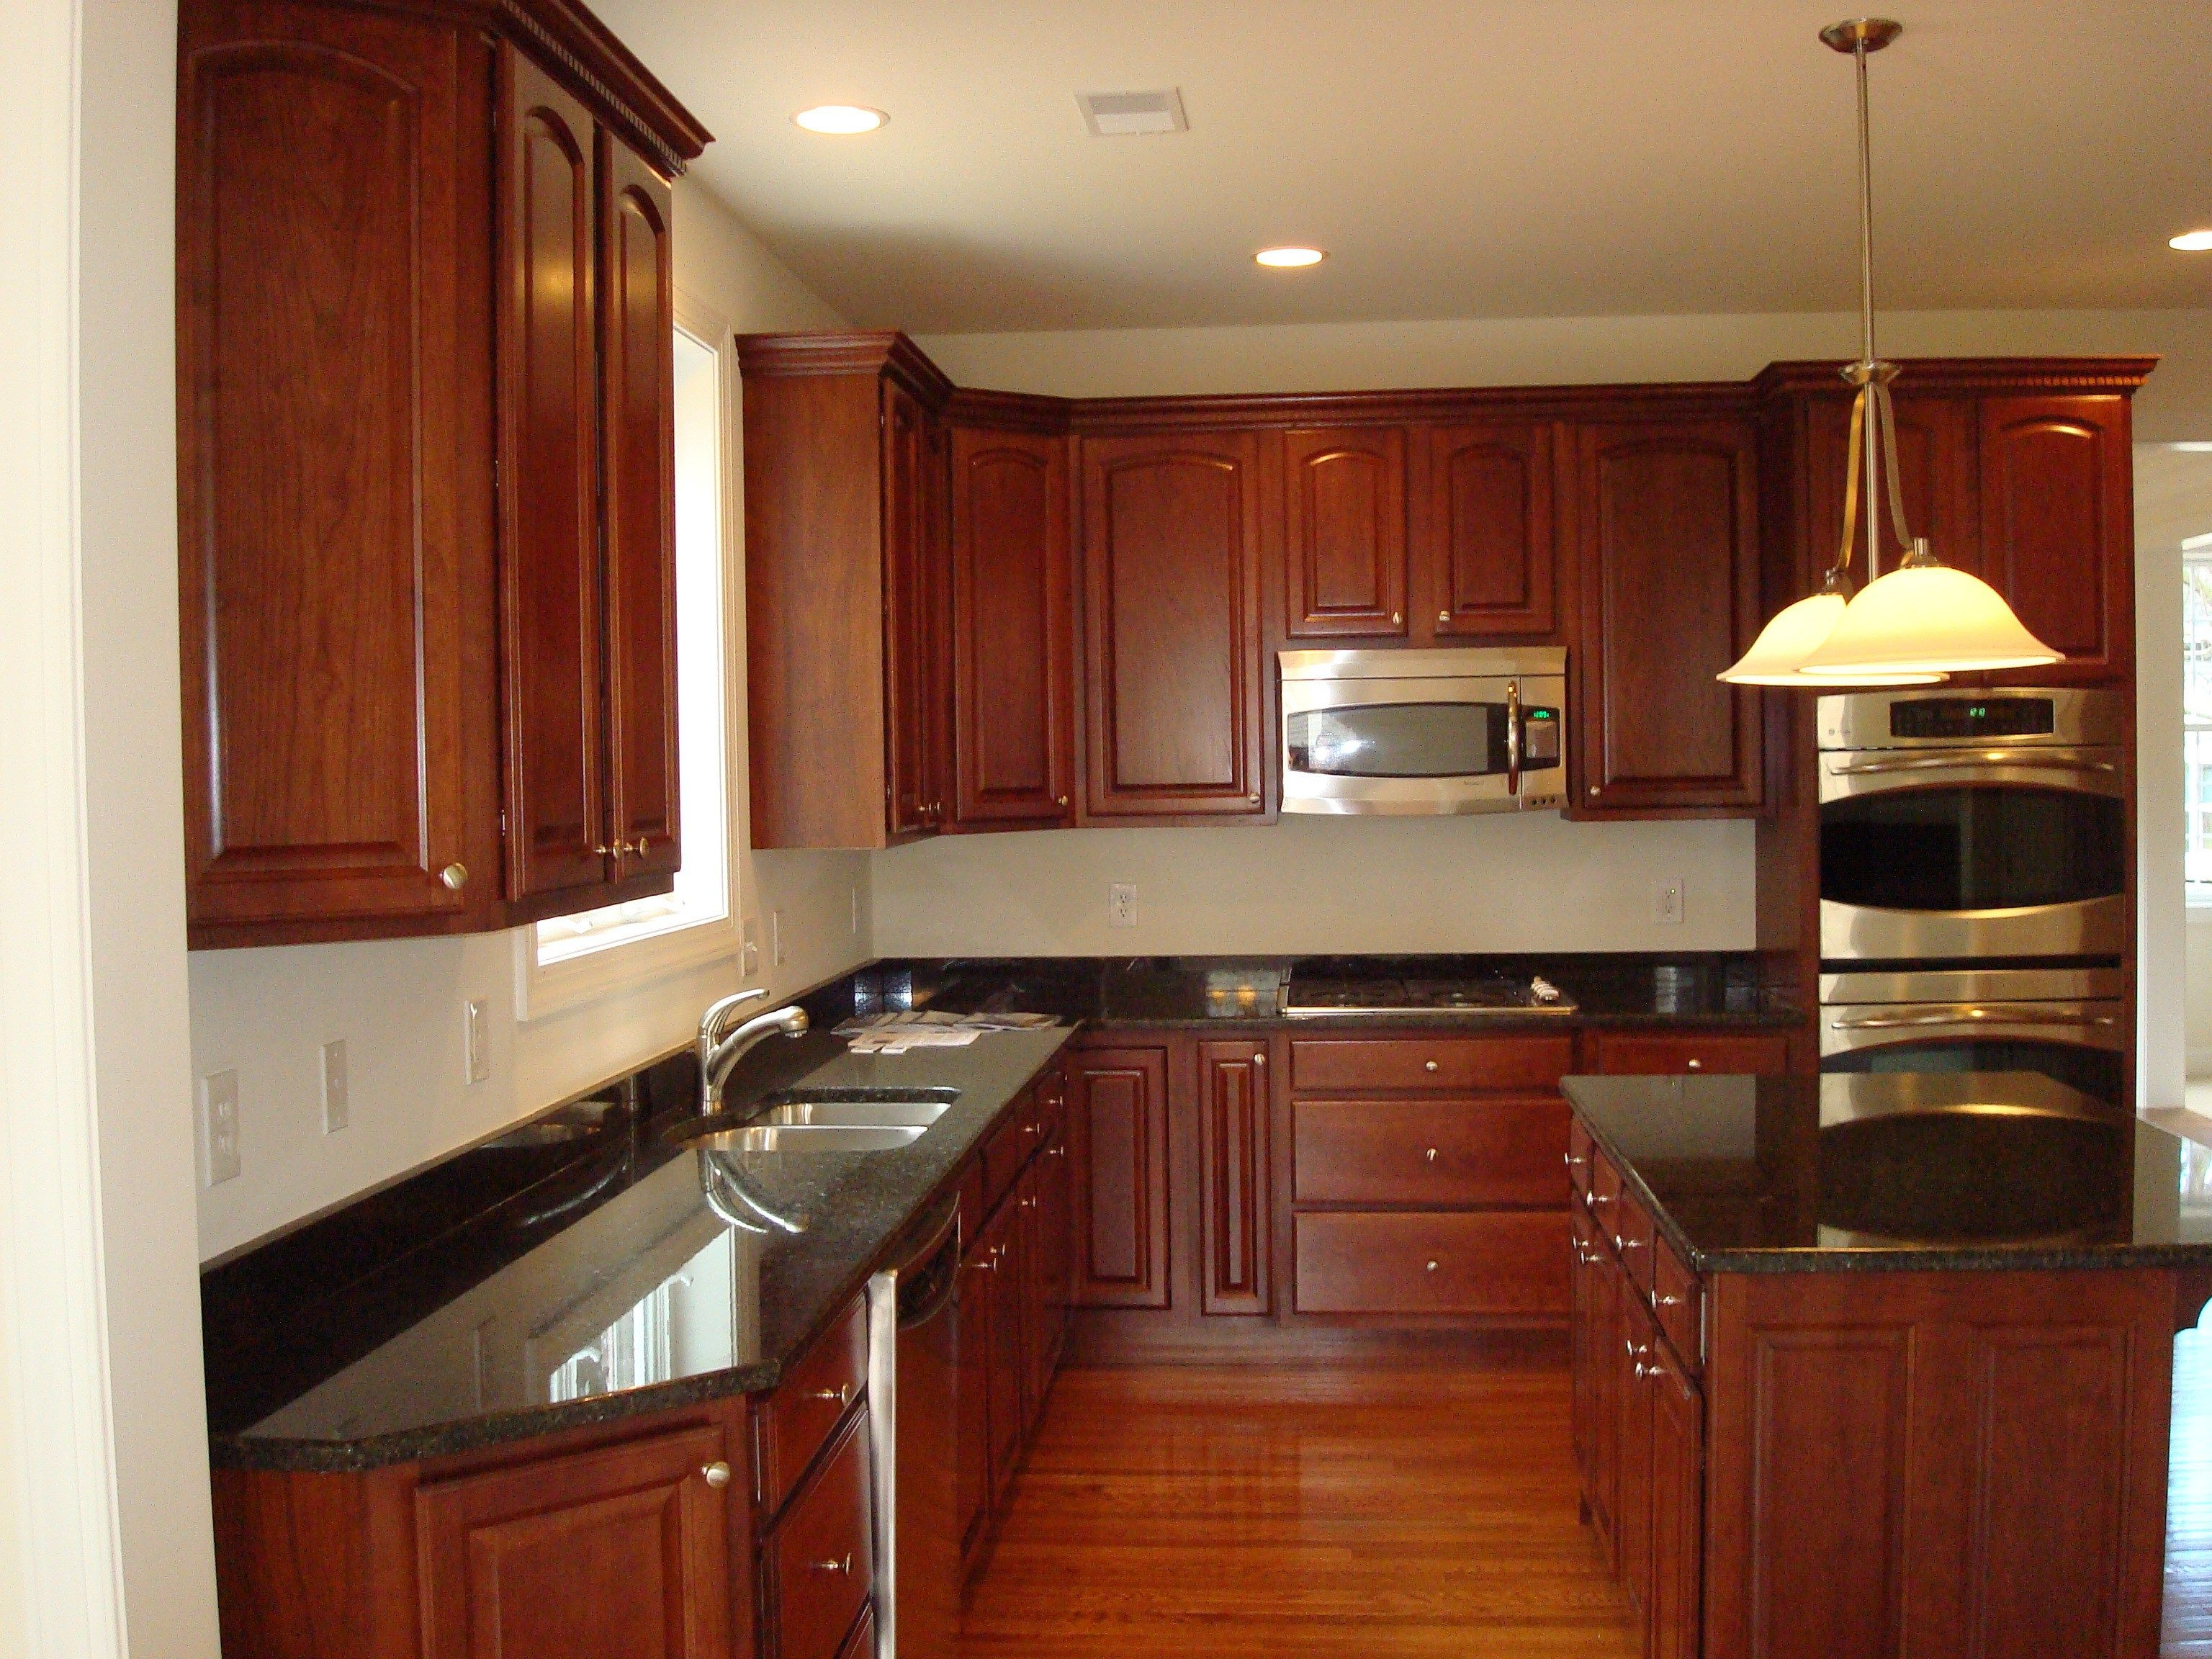 Kitchen Cabinets Countertops And Flooring Combinations Black Kitchen Cabinets And Countertops Kitchen Cabinets On A Budget Black Kitchen Countertops